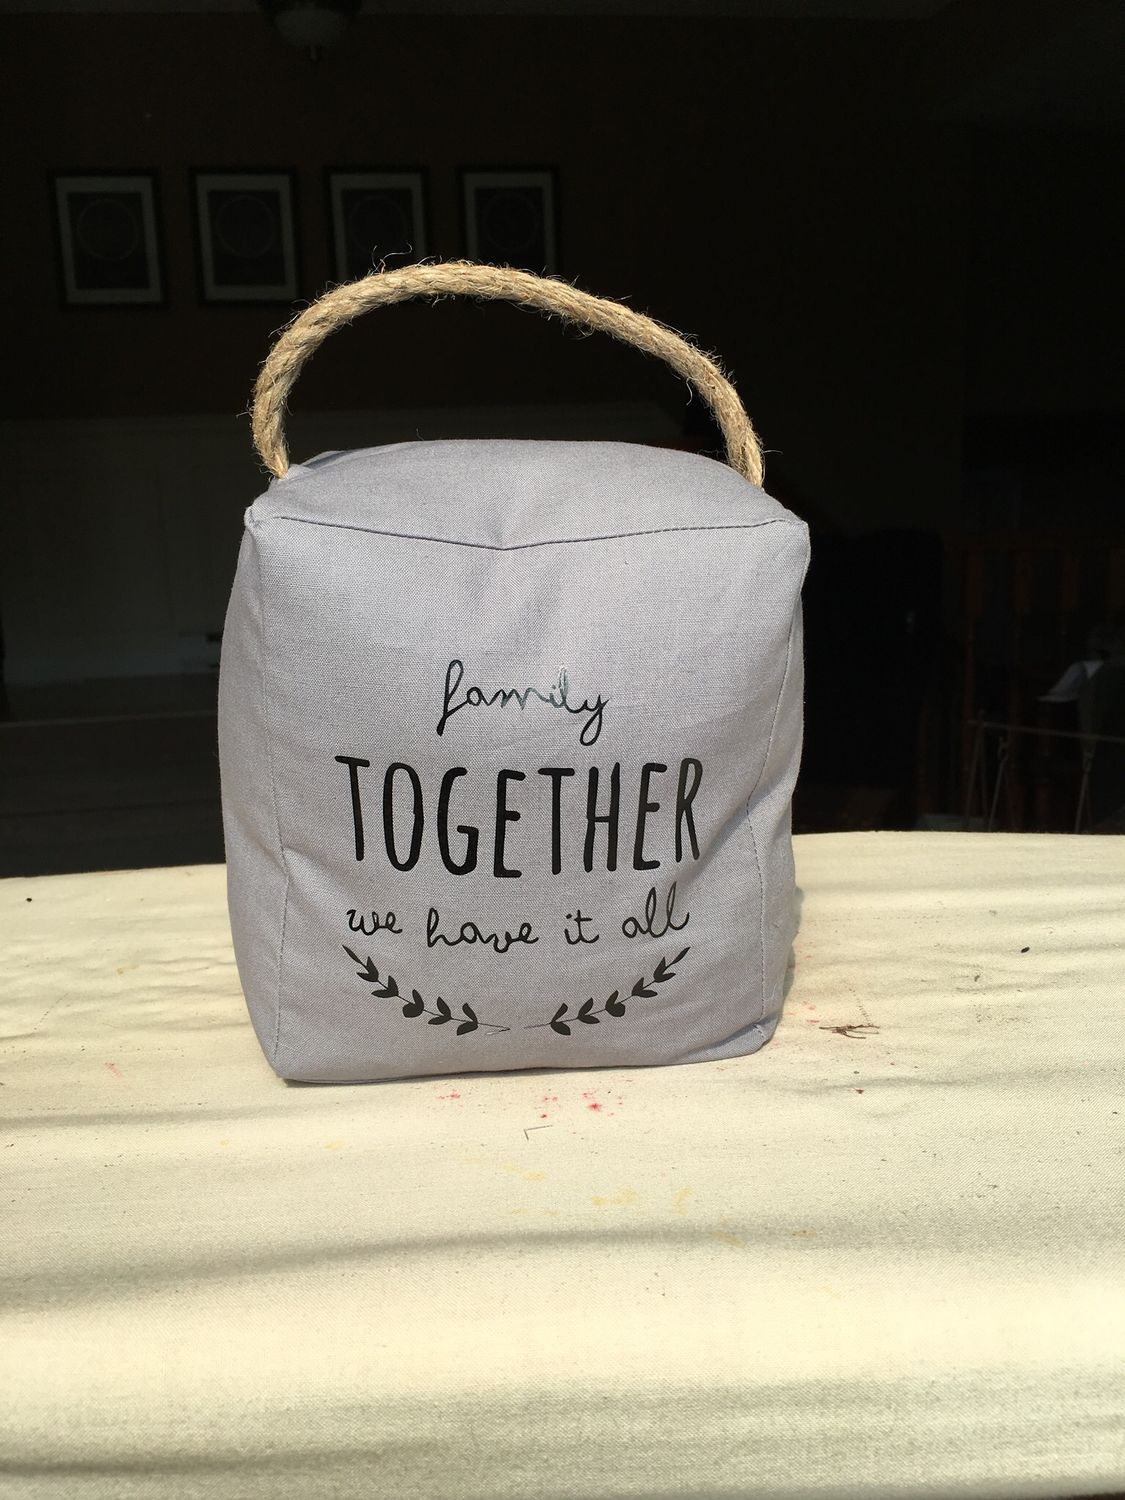 Door Stop - Family Together, we have it all - SOLD OUT